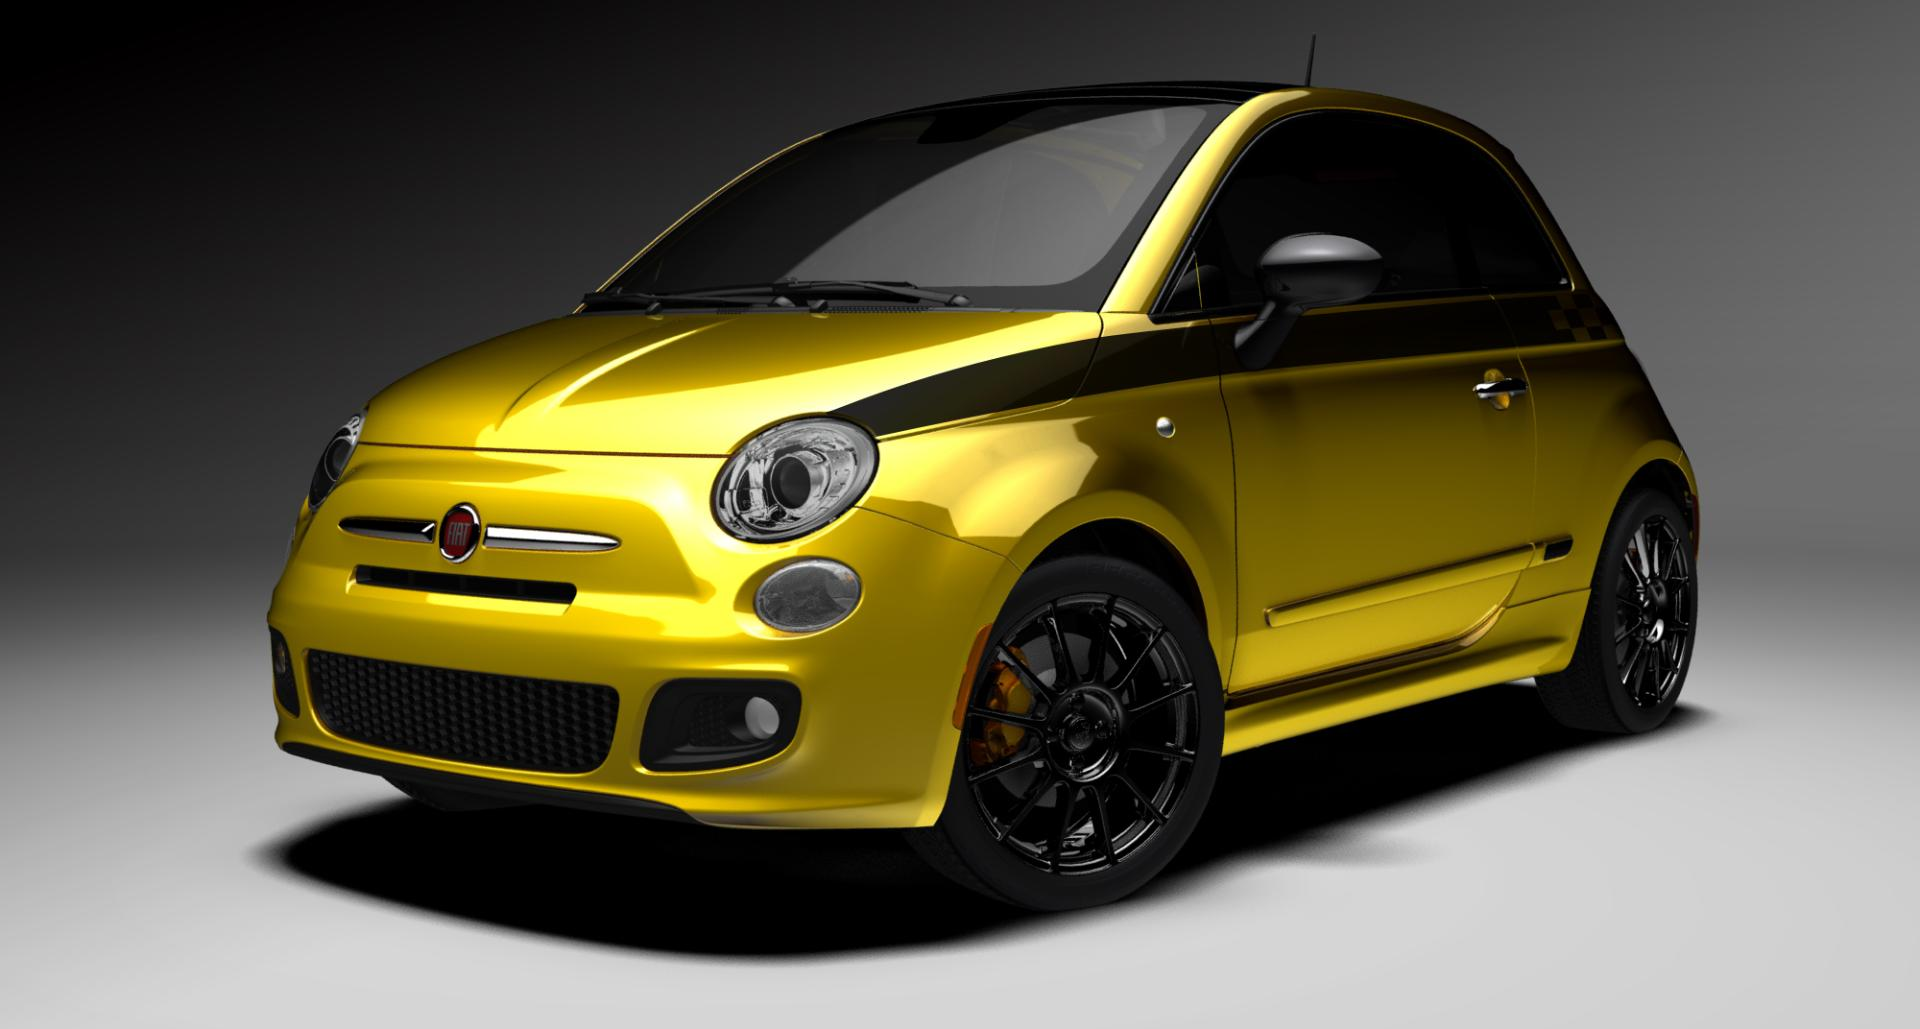 2012 fiat 500 stinger technical specifications and data engine dimensions and mechanical. Black Bedroom Furniture Sets. Home Design Ideas